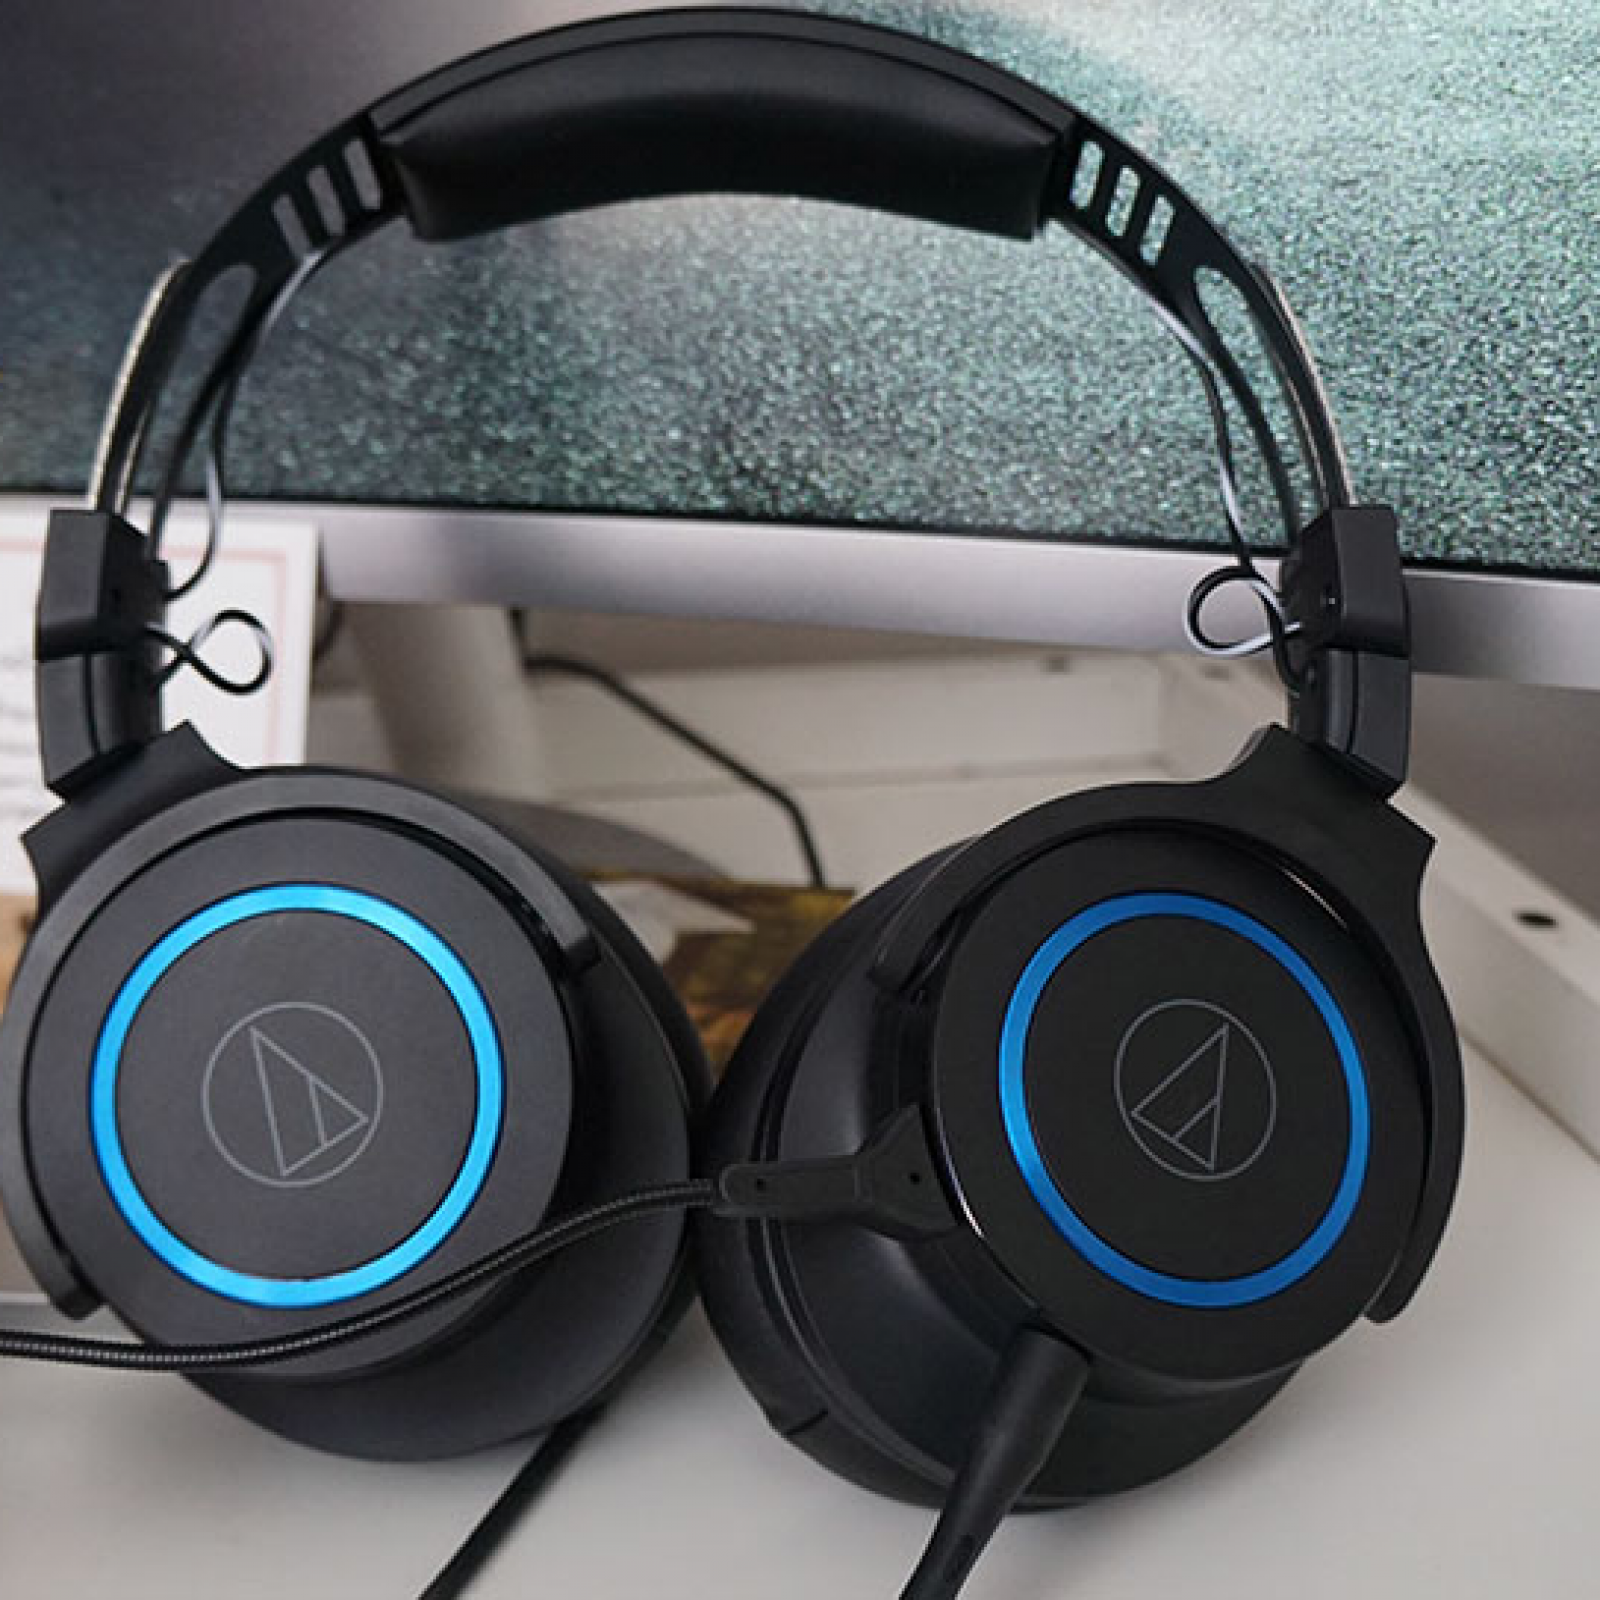 Social Distancing The 10 Best Gaming Headsets To Buy Right Now